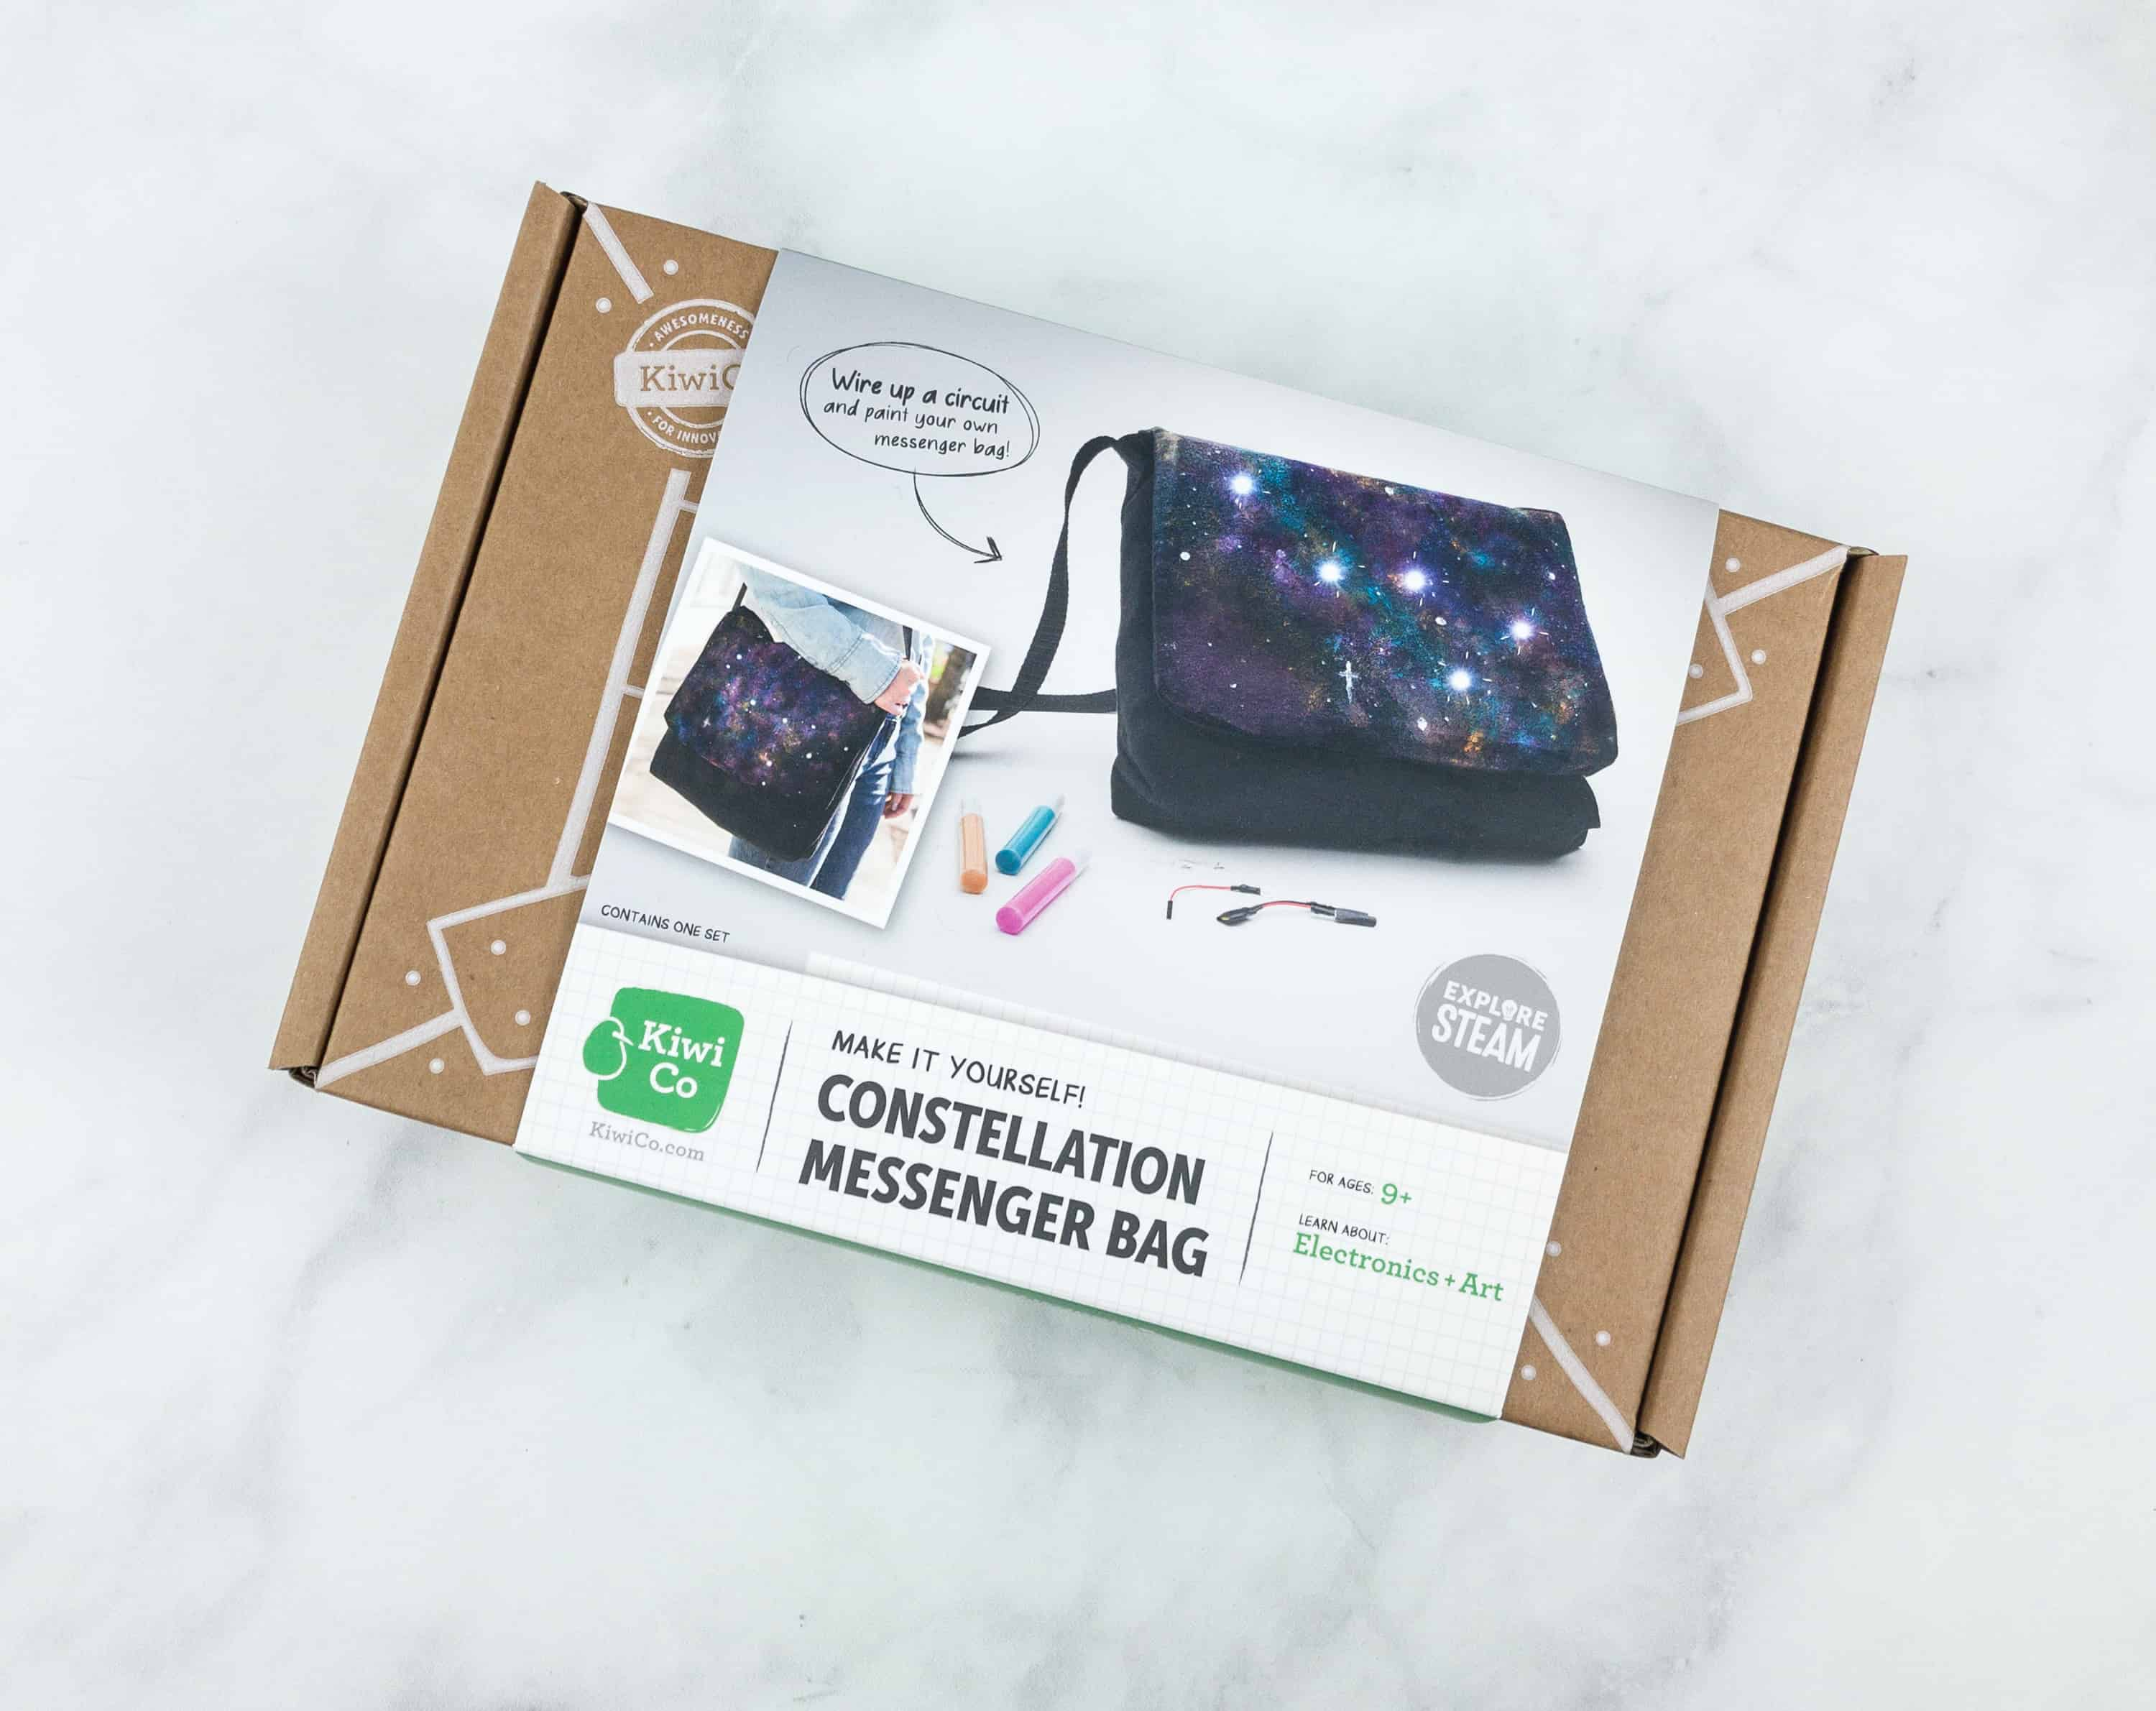 5615736e0d43 KiwiCo STEAM Review & Coupon - Constellation Messenger Bag - hello ...